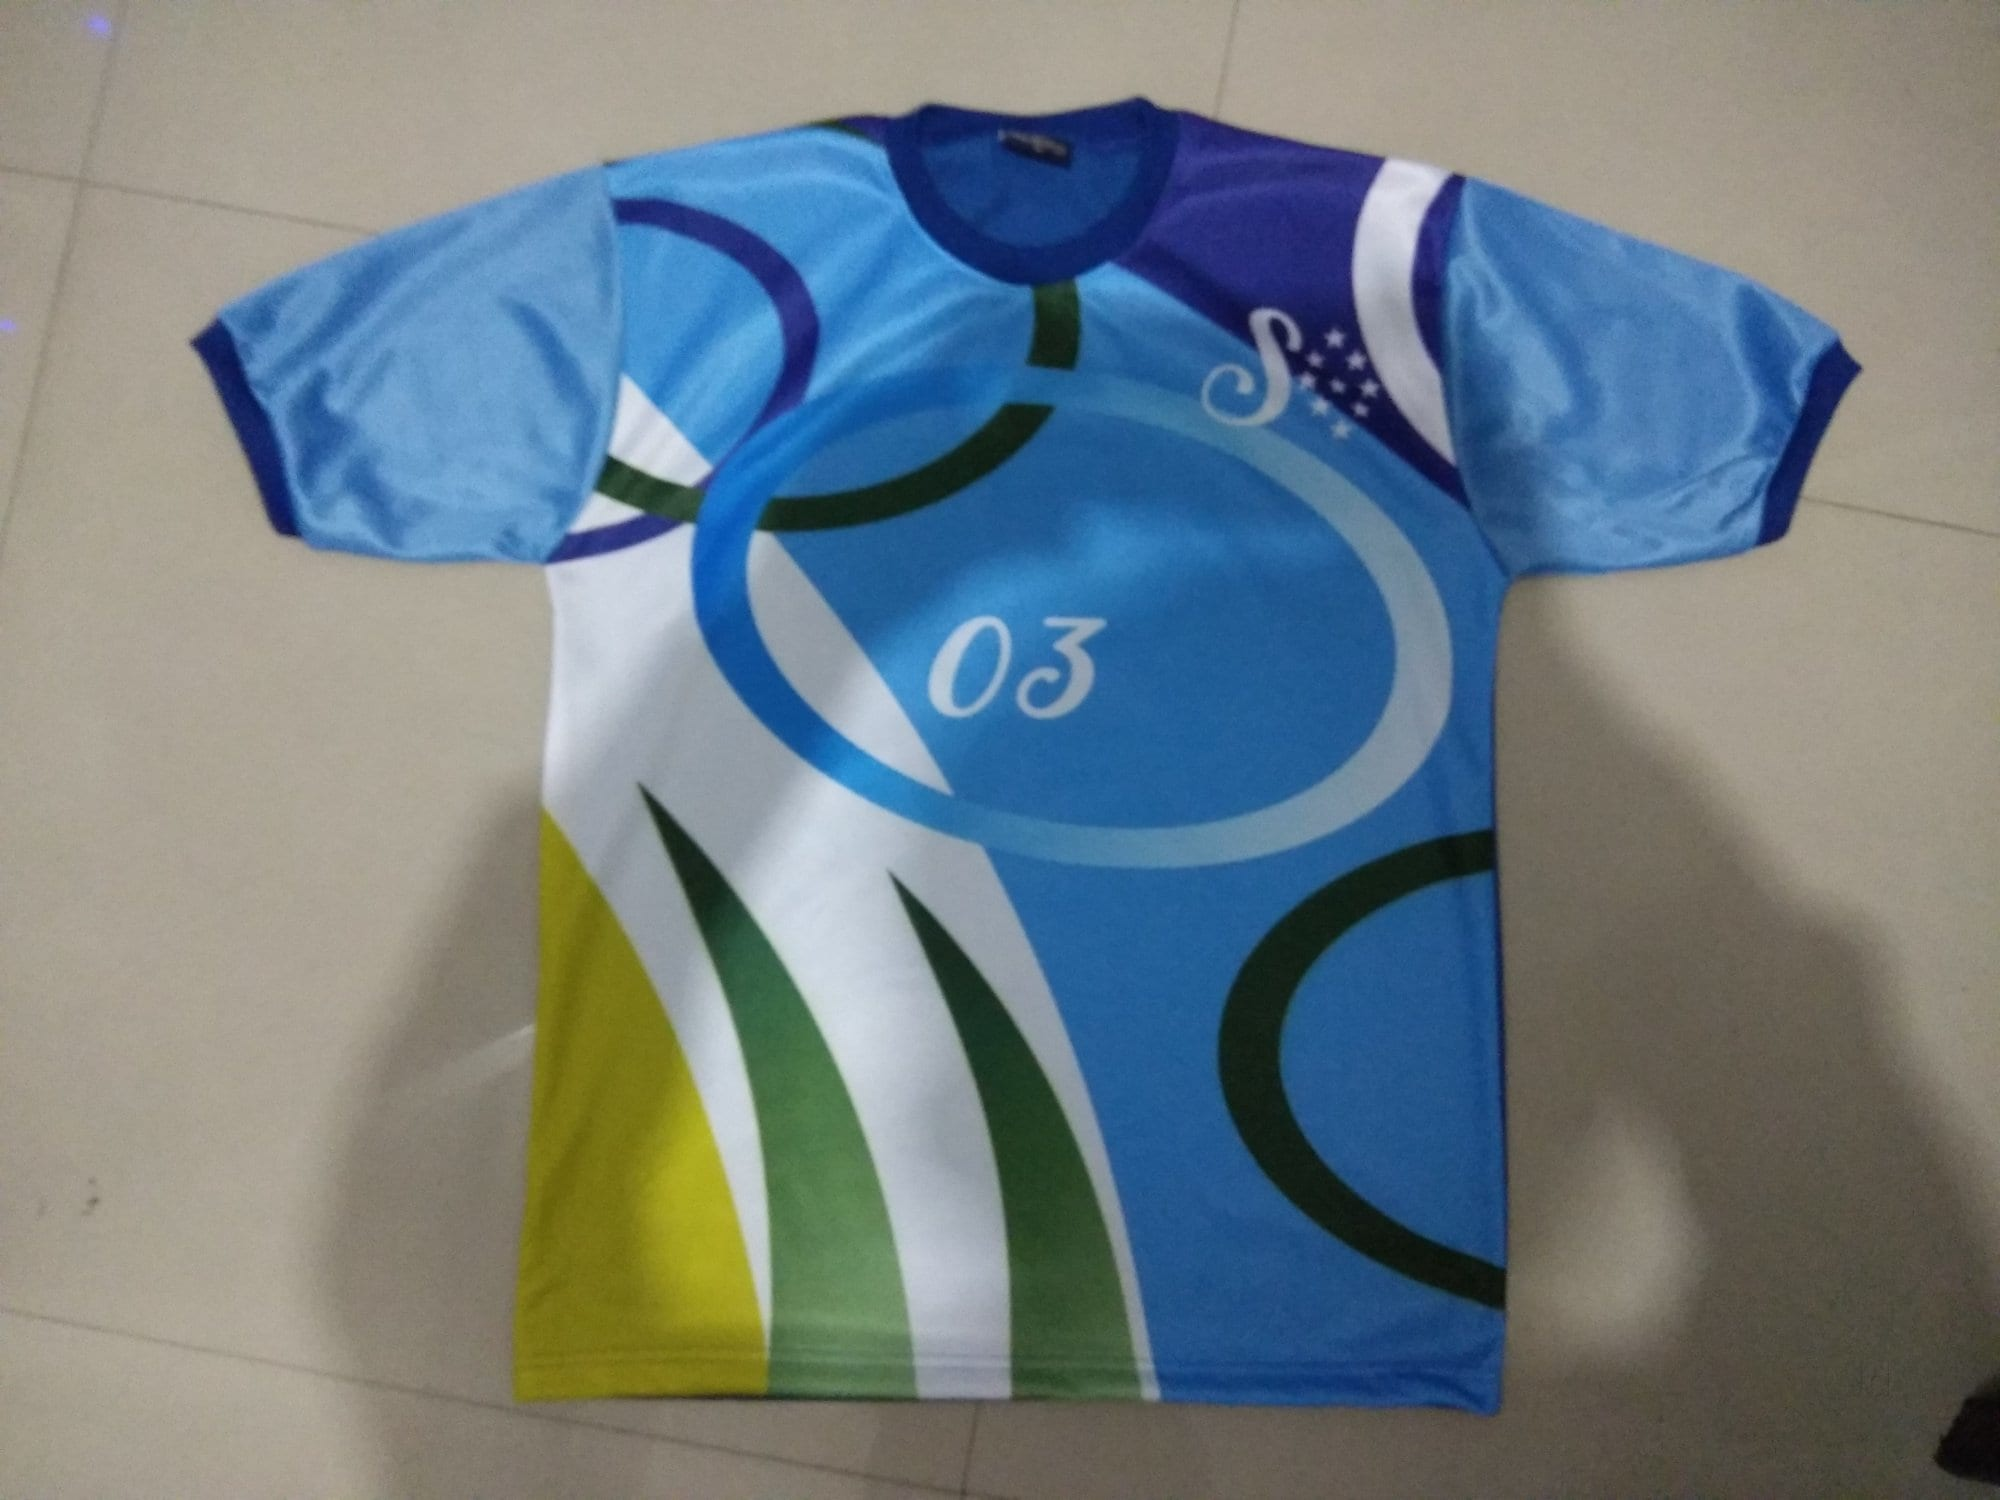 bd473332e Top T Shirts Manufacturer in Hosur - Best Tshirt Printing Services ...